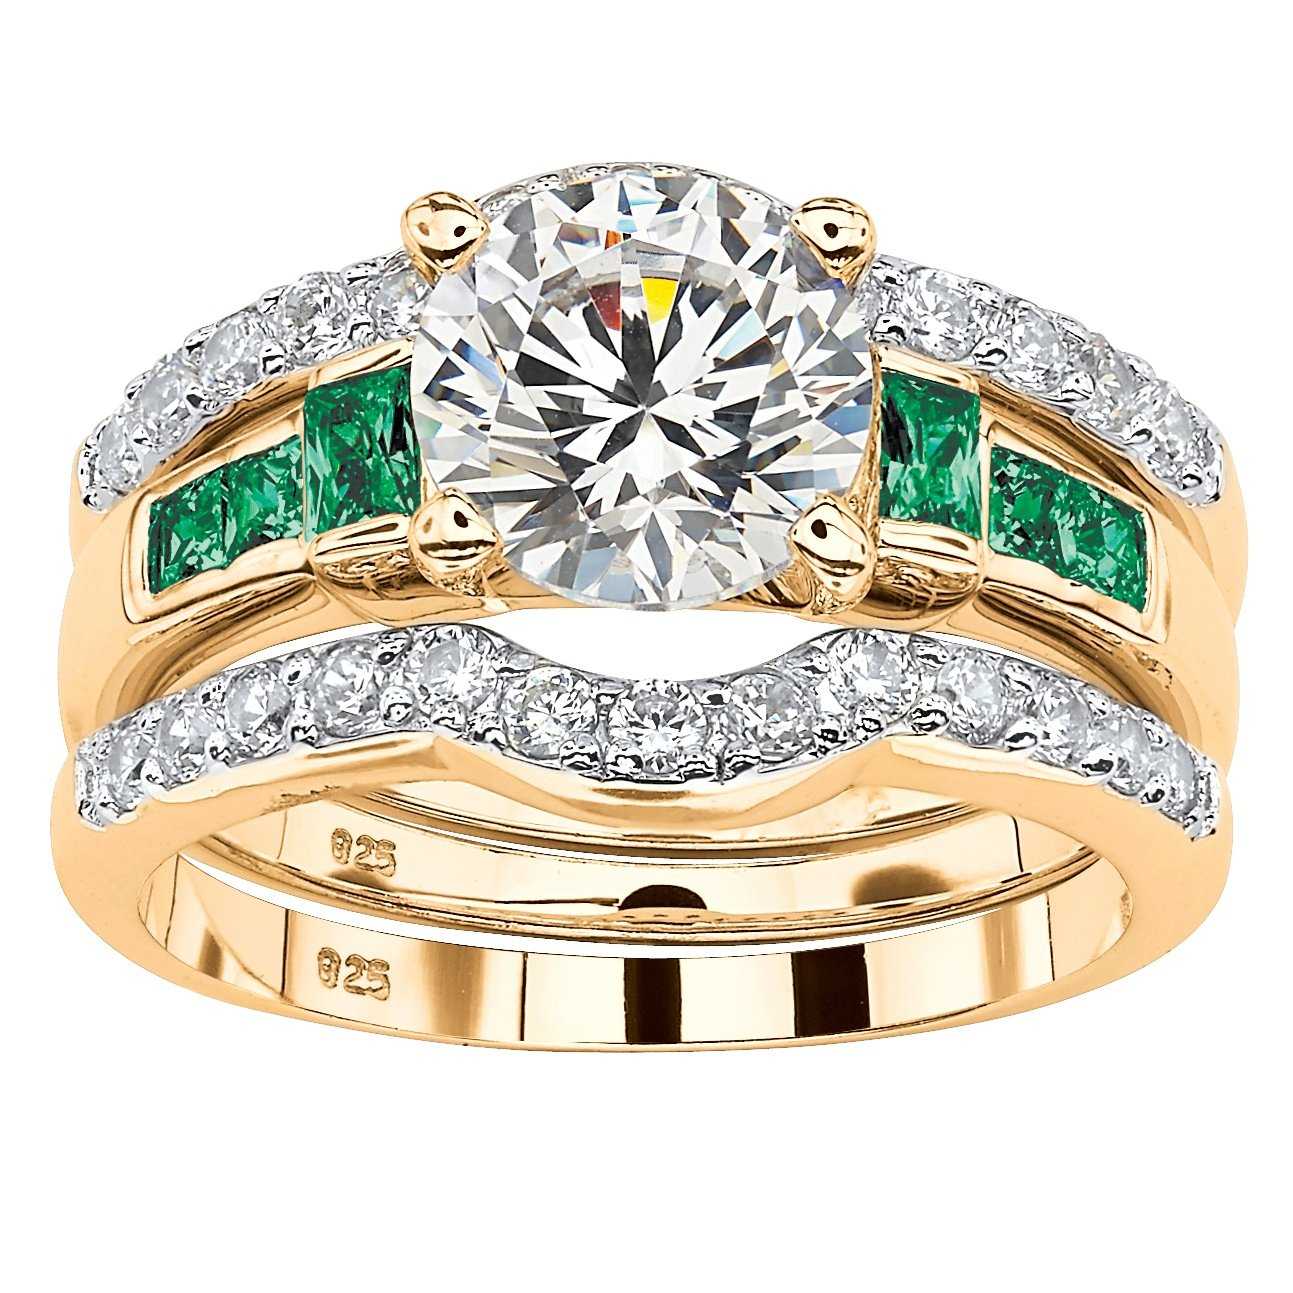 Palm Beach Jewelry Round White Cubic Zirconia and Green Crystal 18k Gold over .925 Silver 3-Piece Bridal Ring Set Size 6